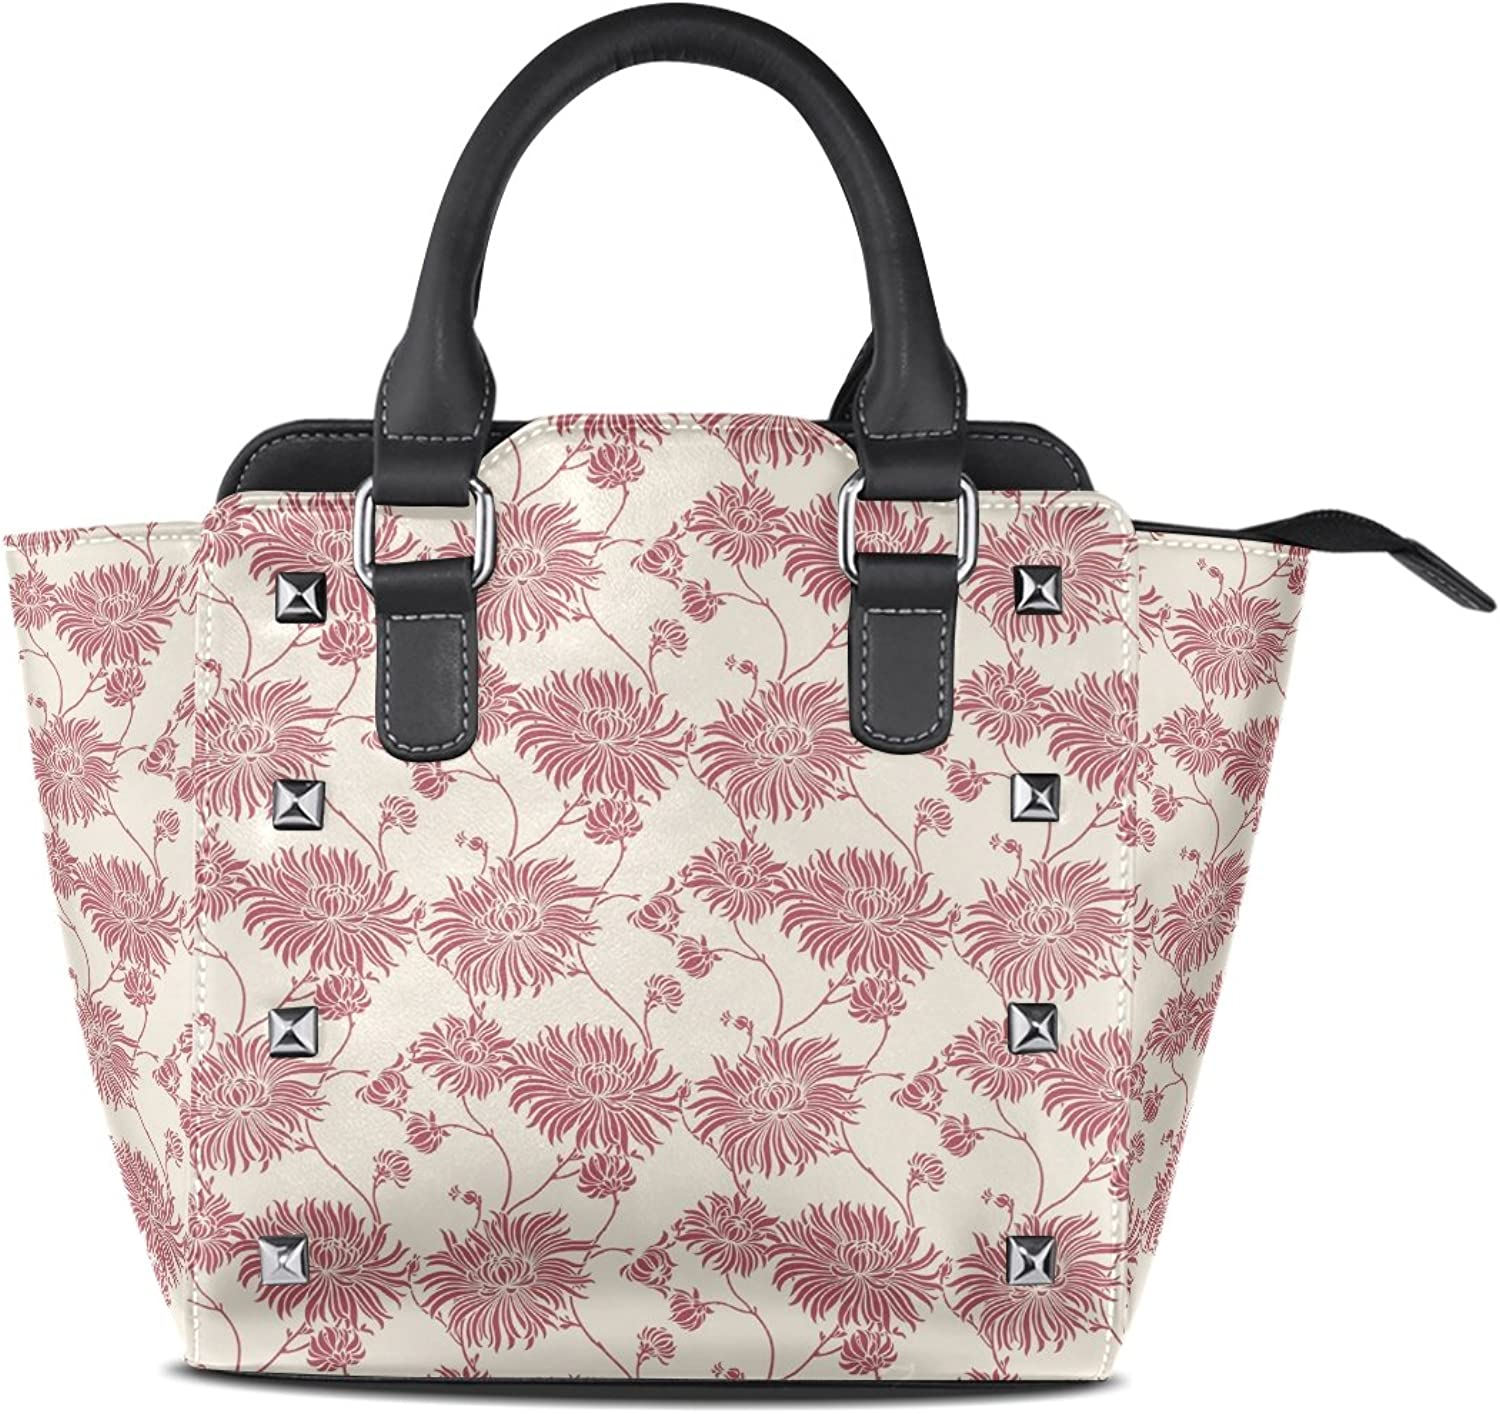 Sunlome Linen Floral Print Women's Leather Tote Shoulder Bags Handbags